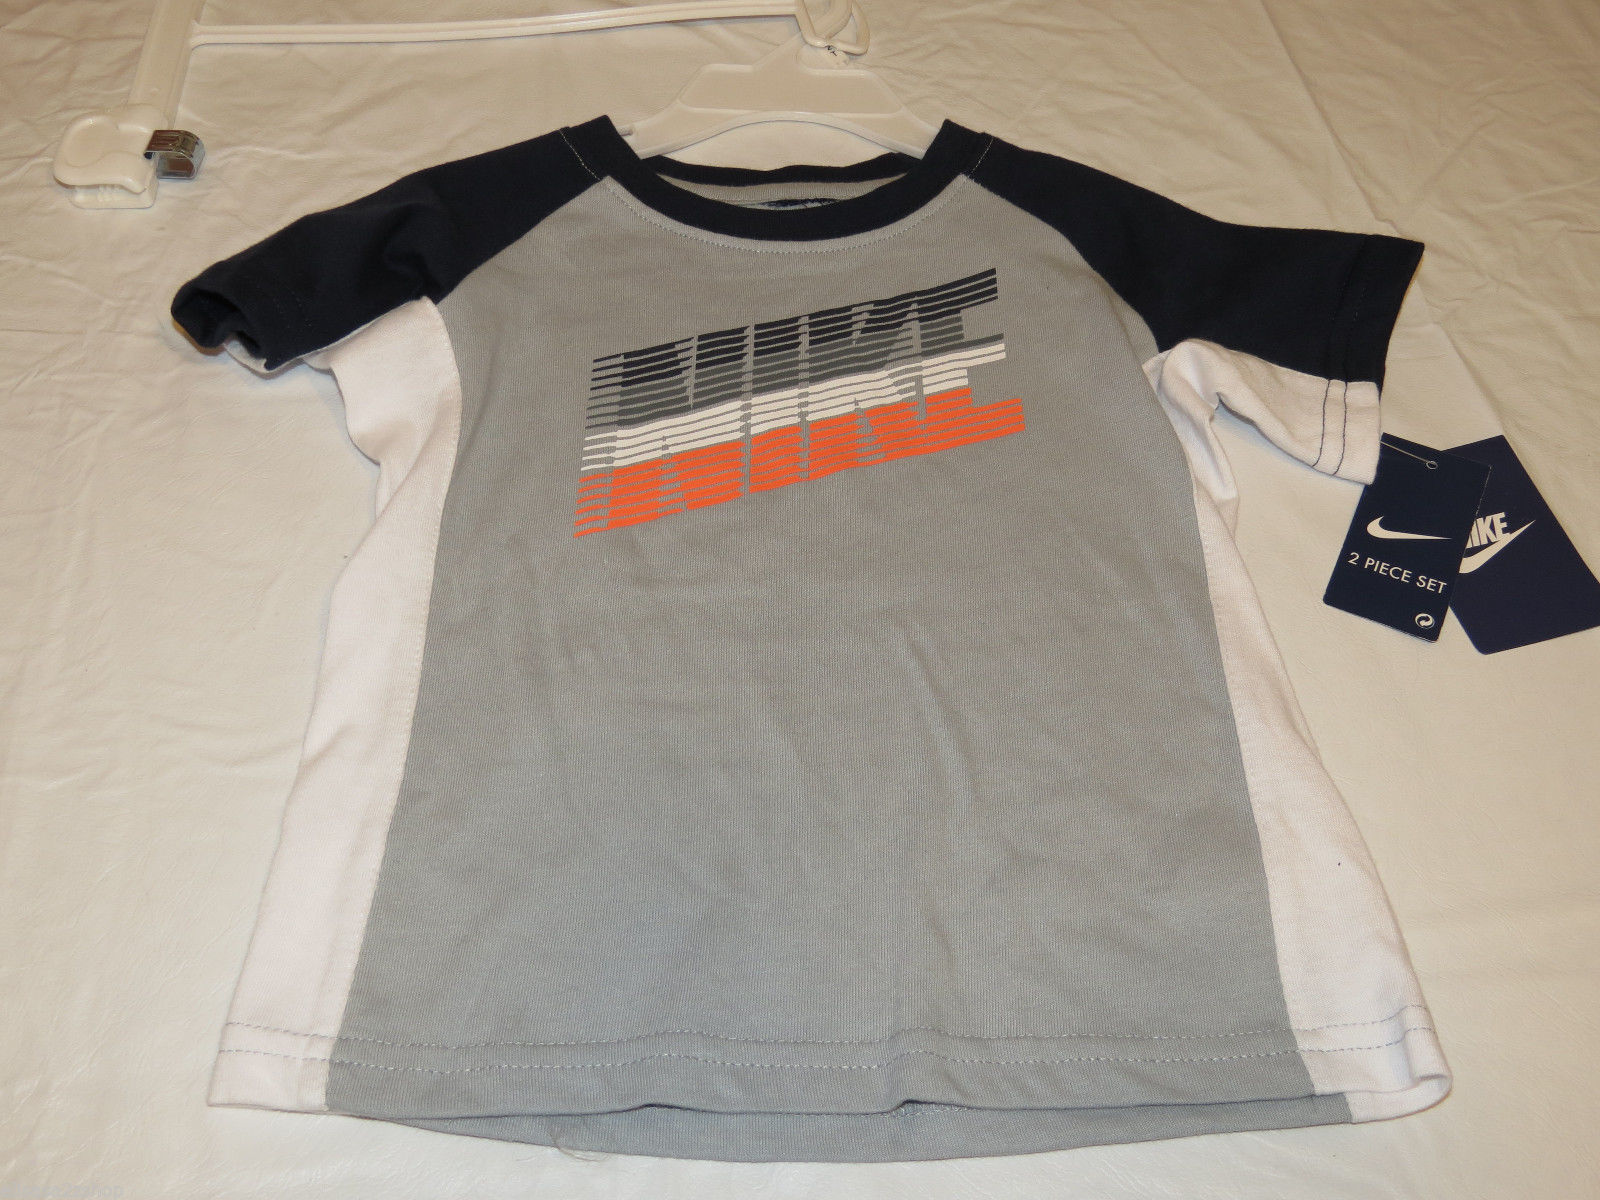 af49bf4f Nike Youth Shirts And Shorts